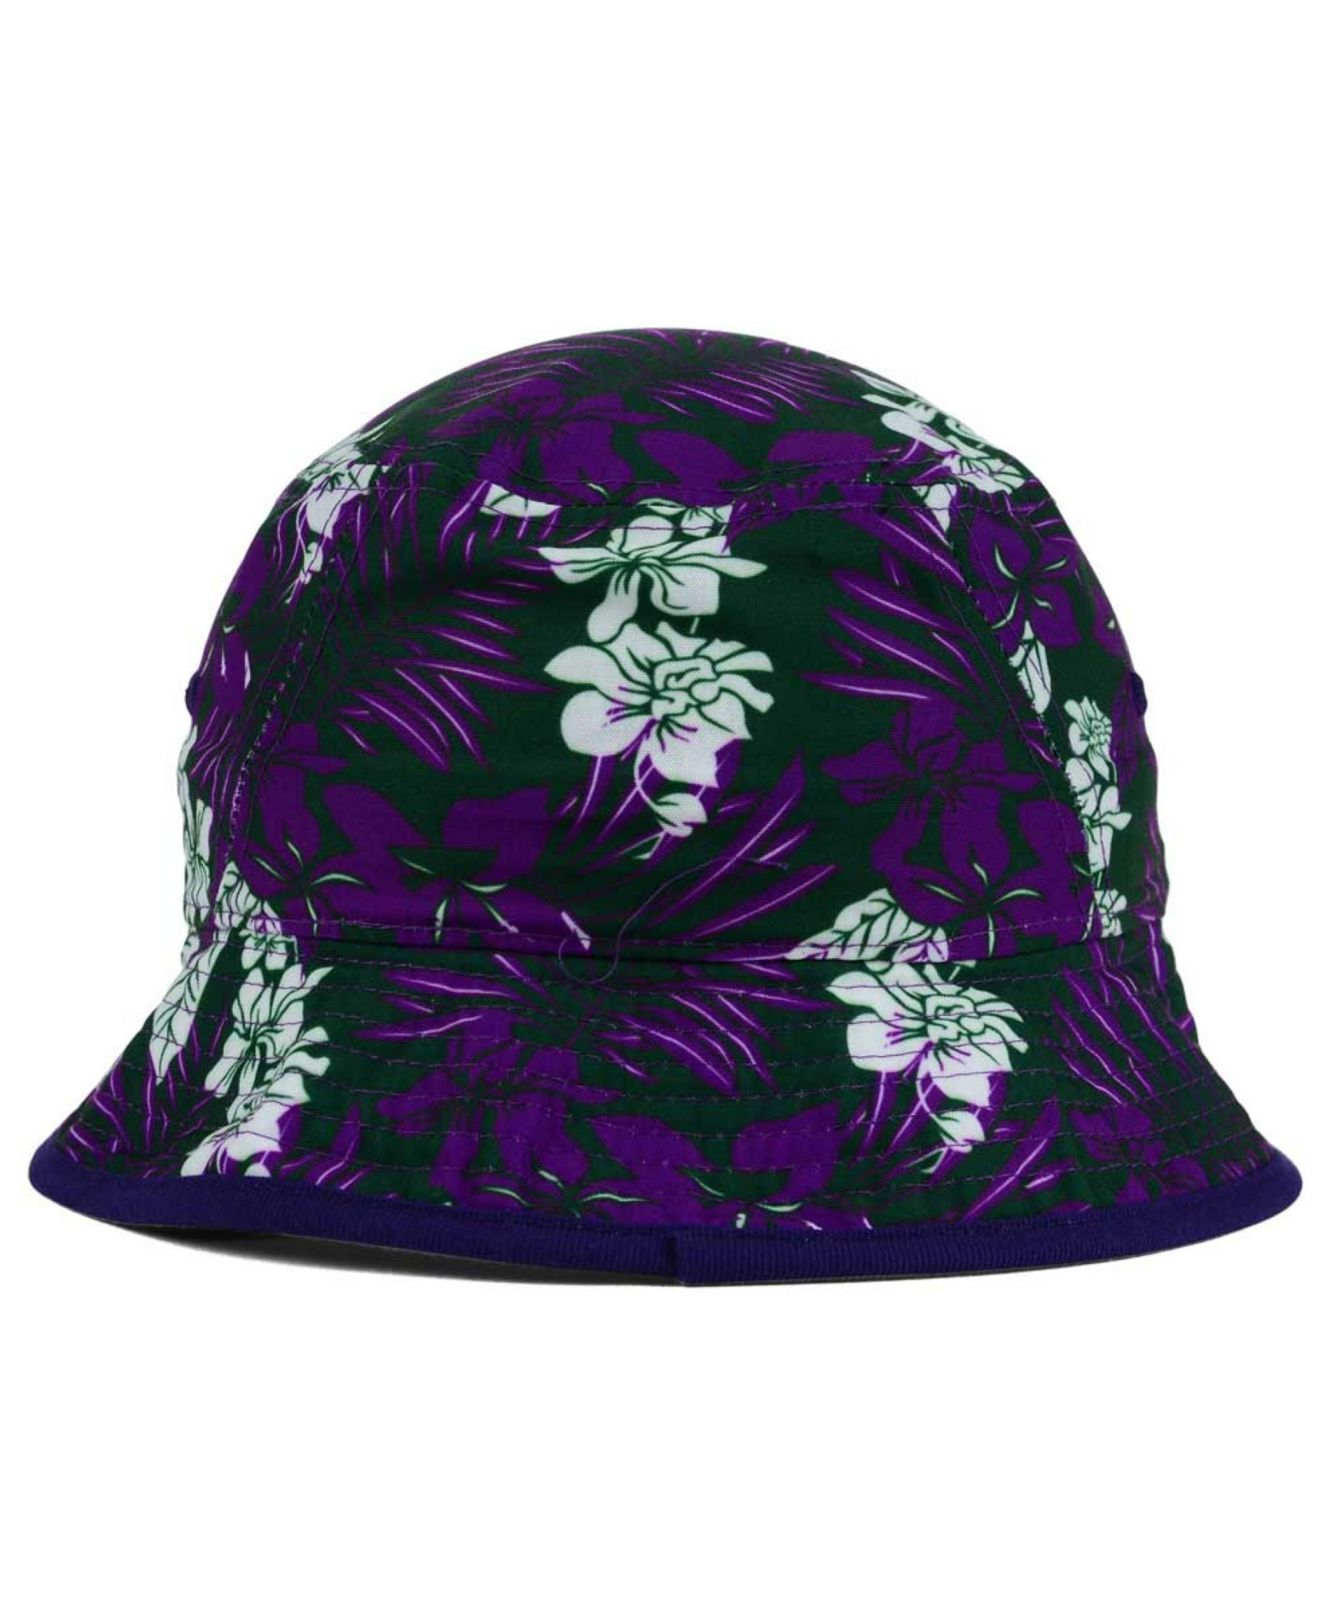 a95581dc3d9a4 ... promo code for lyst ktz milwaukee bucks wowie bucket hat in purple for  men d4c2d 0666e ...